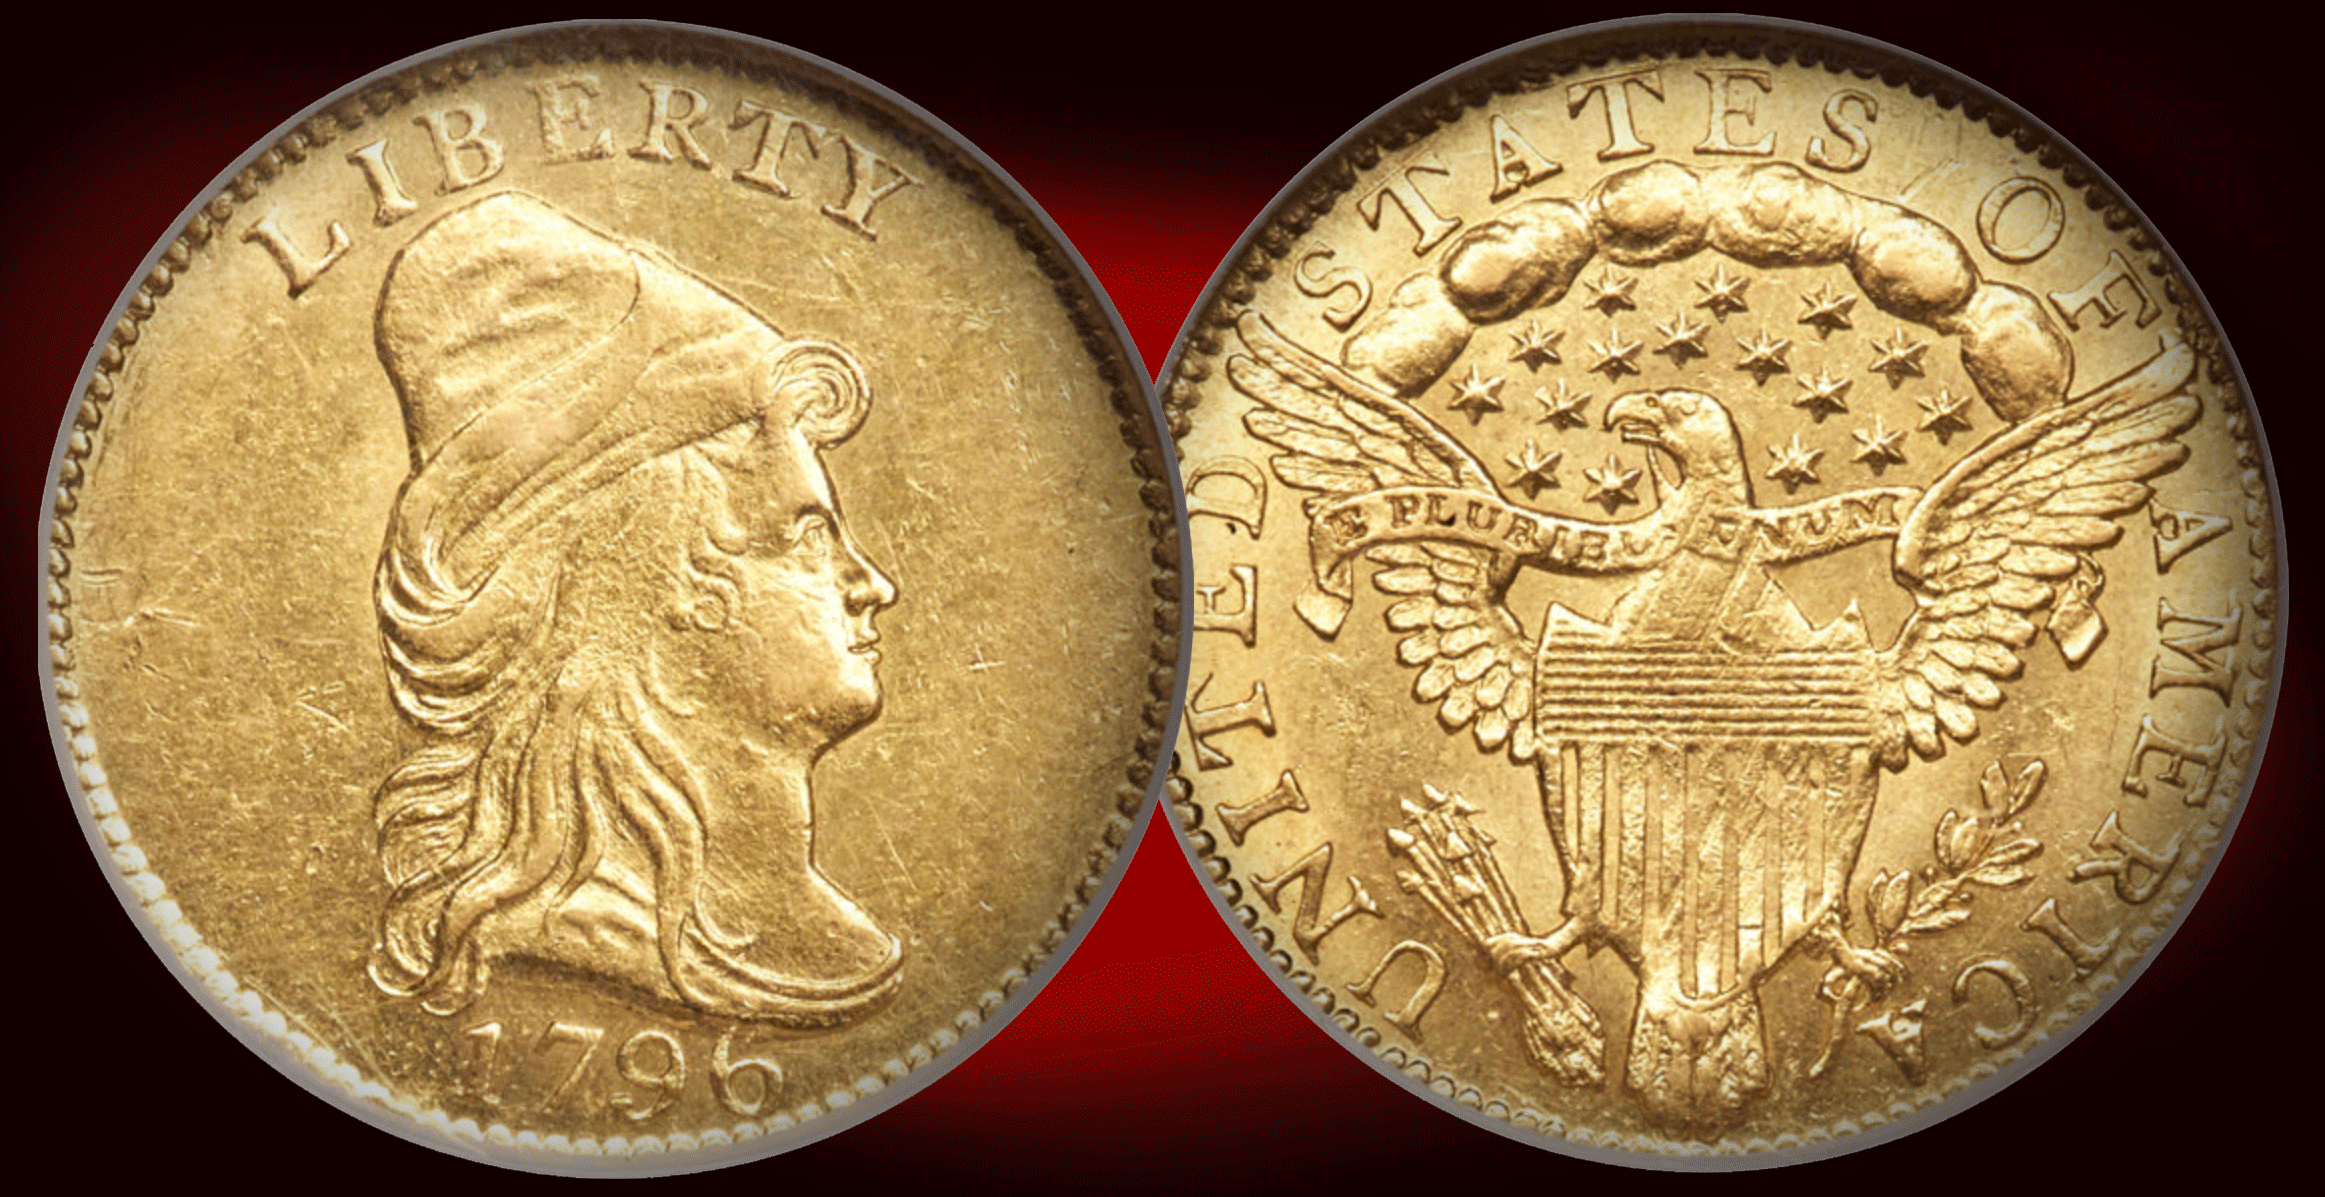 Rare 1796 No Stars Quarter Eagle Gold Coin in Heritage Fun Show Signature Auction